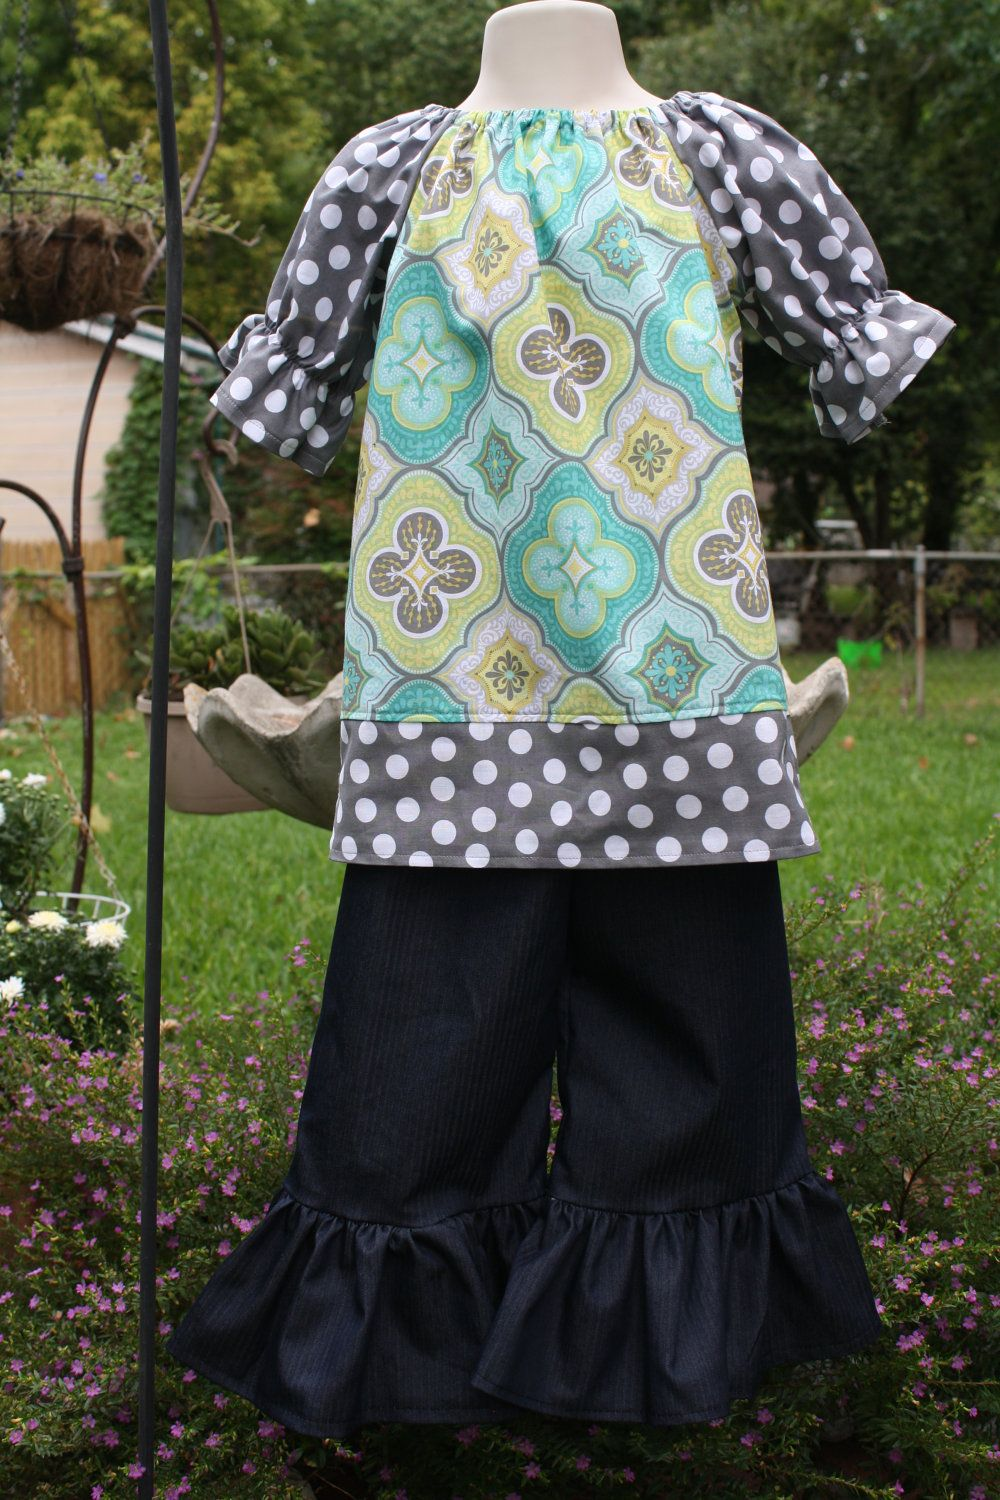 Green yellow and blue peasant dress with grey polka dot sleeves